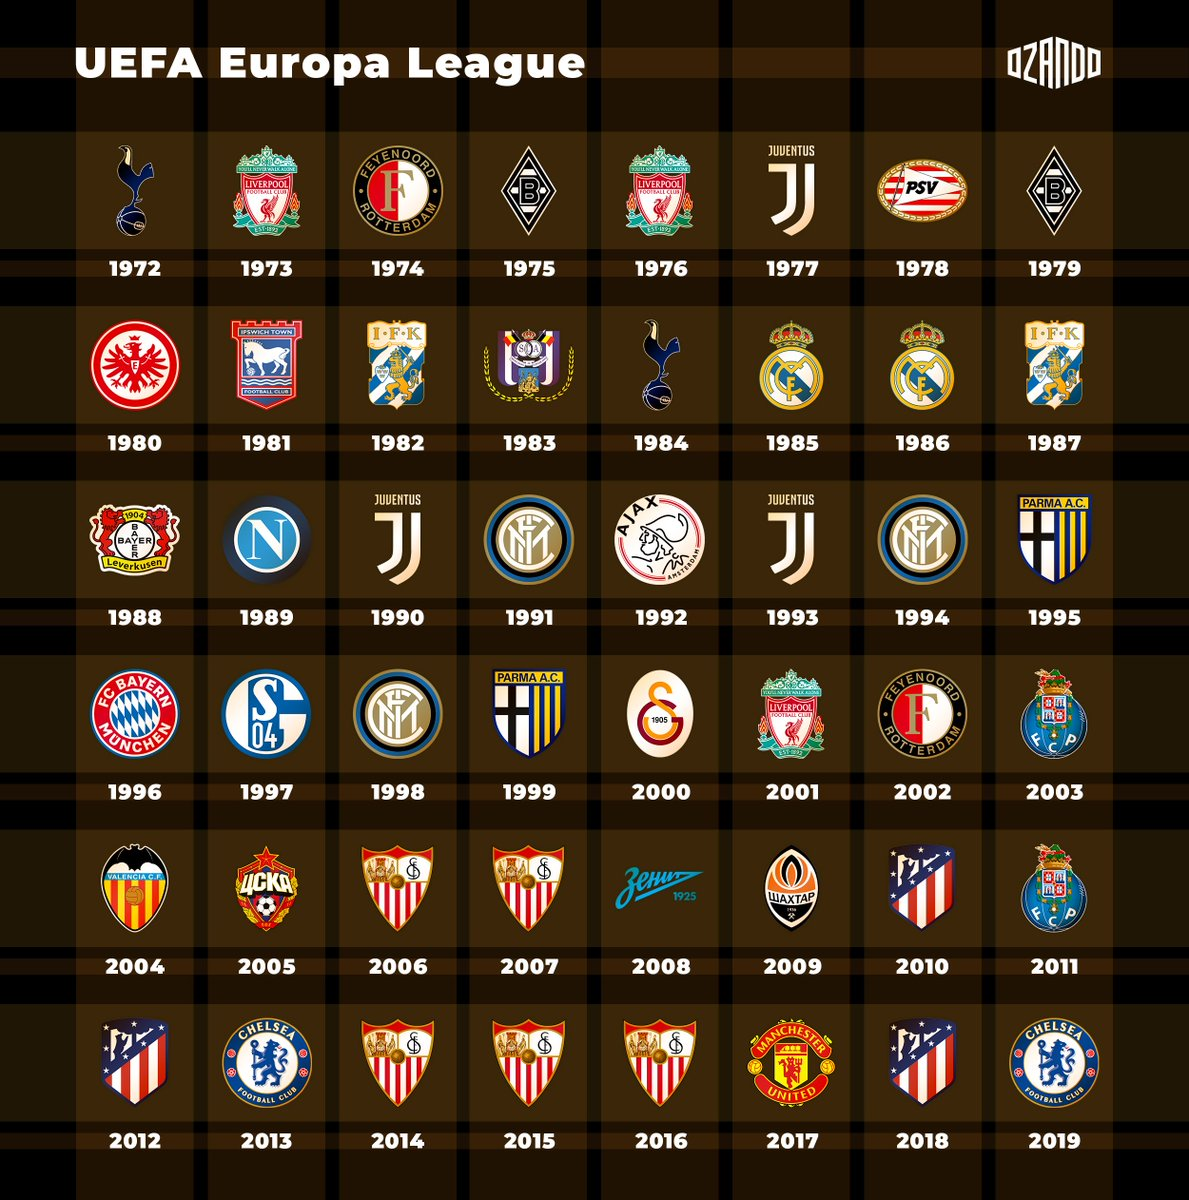 uefa europa league winners off 62 www hidrogrup com tr uefa europa league winners